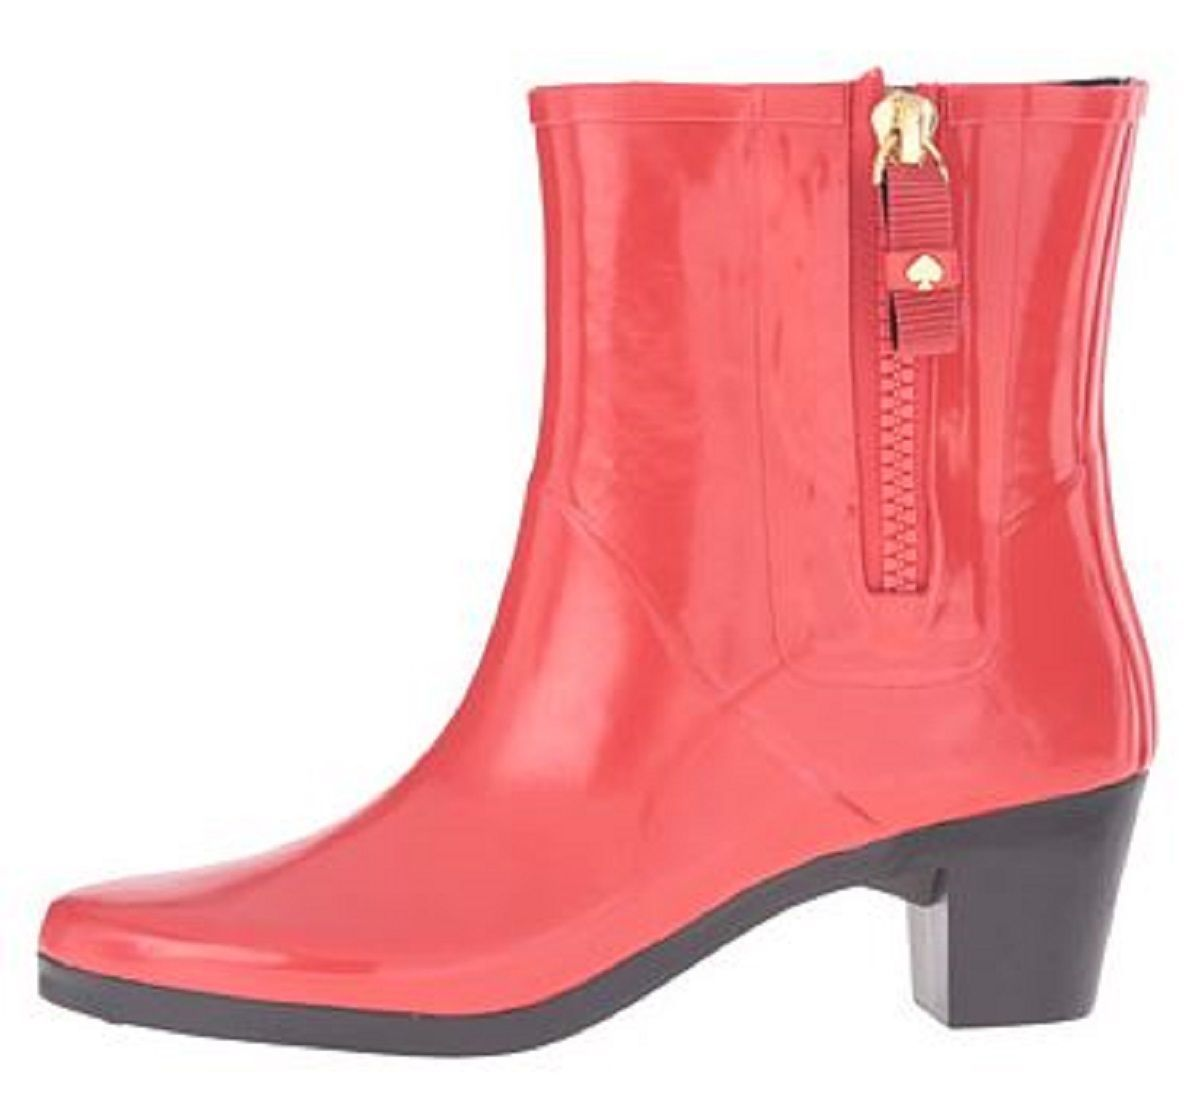 Primary image for Women's Shoes Kate Spade New York PENNY Short Rain Boots Rubber Red